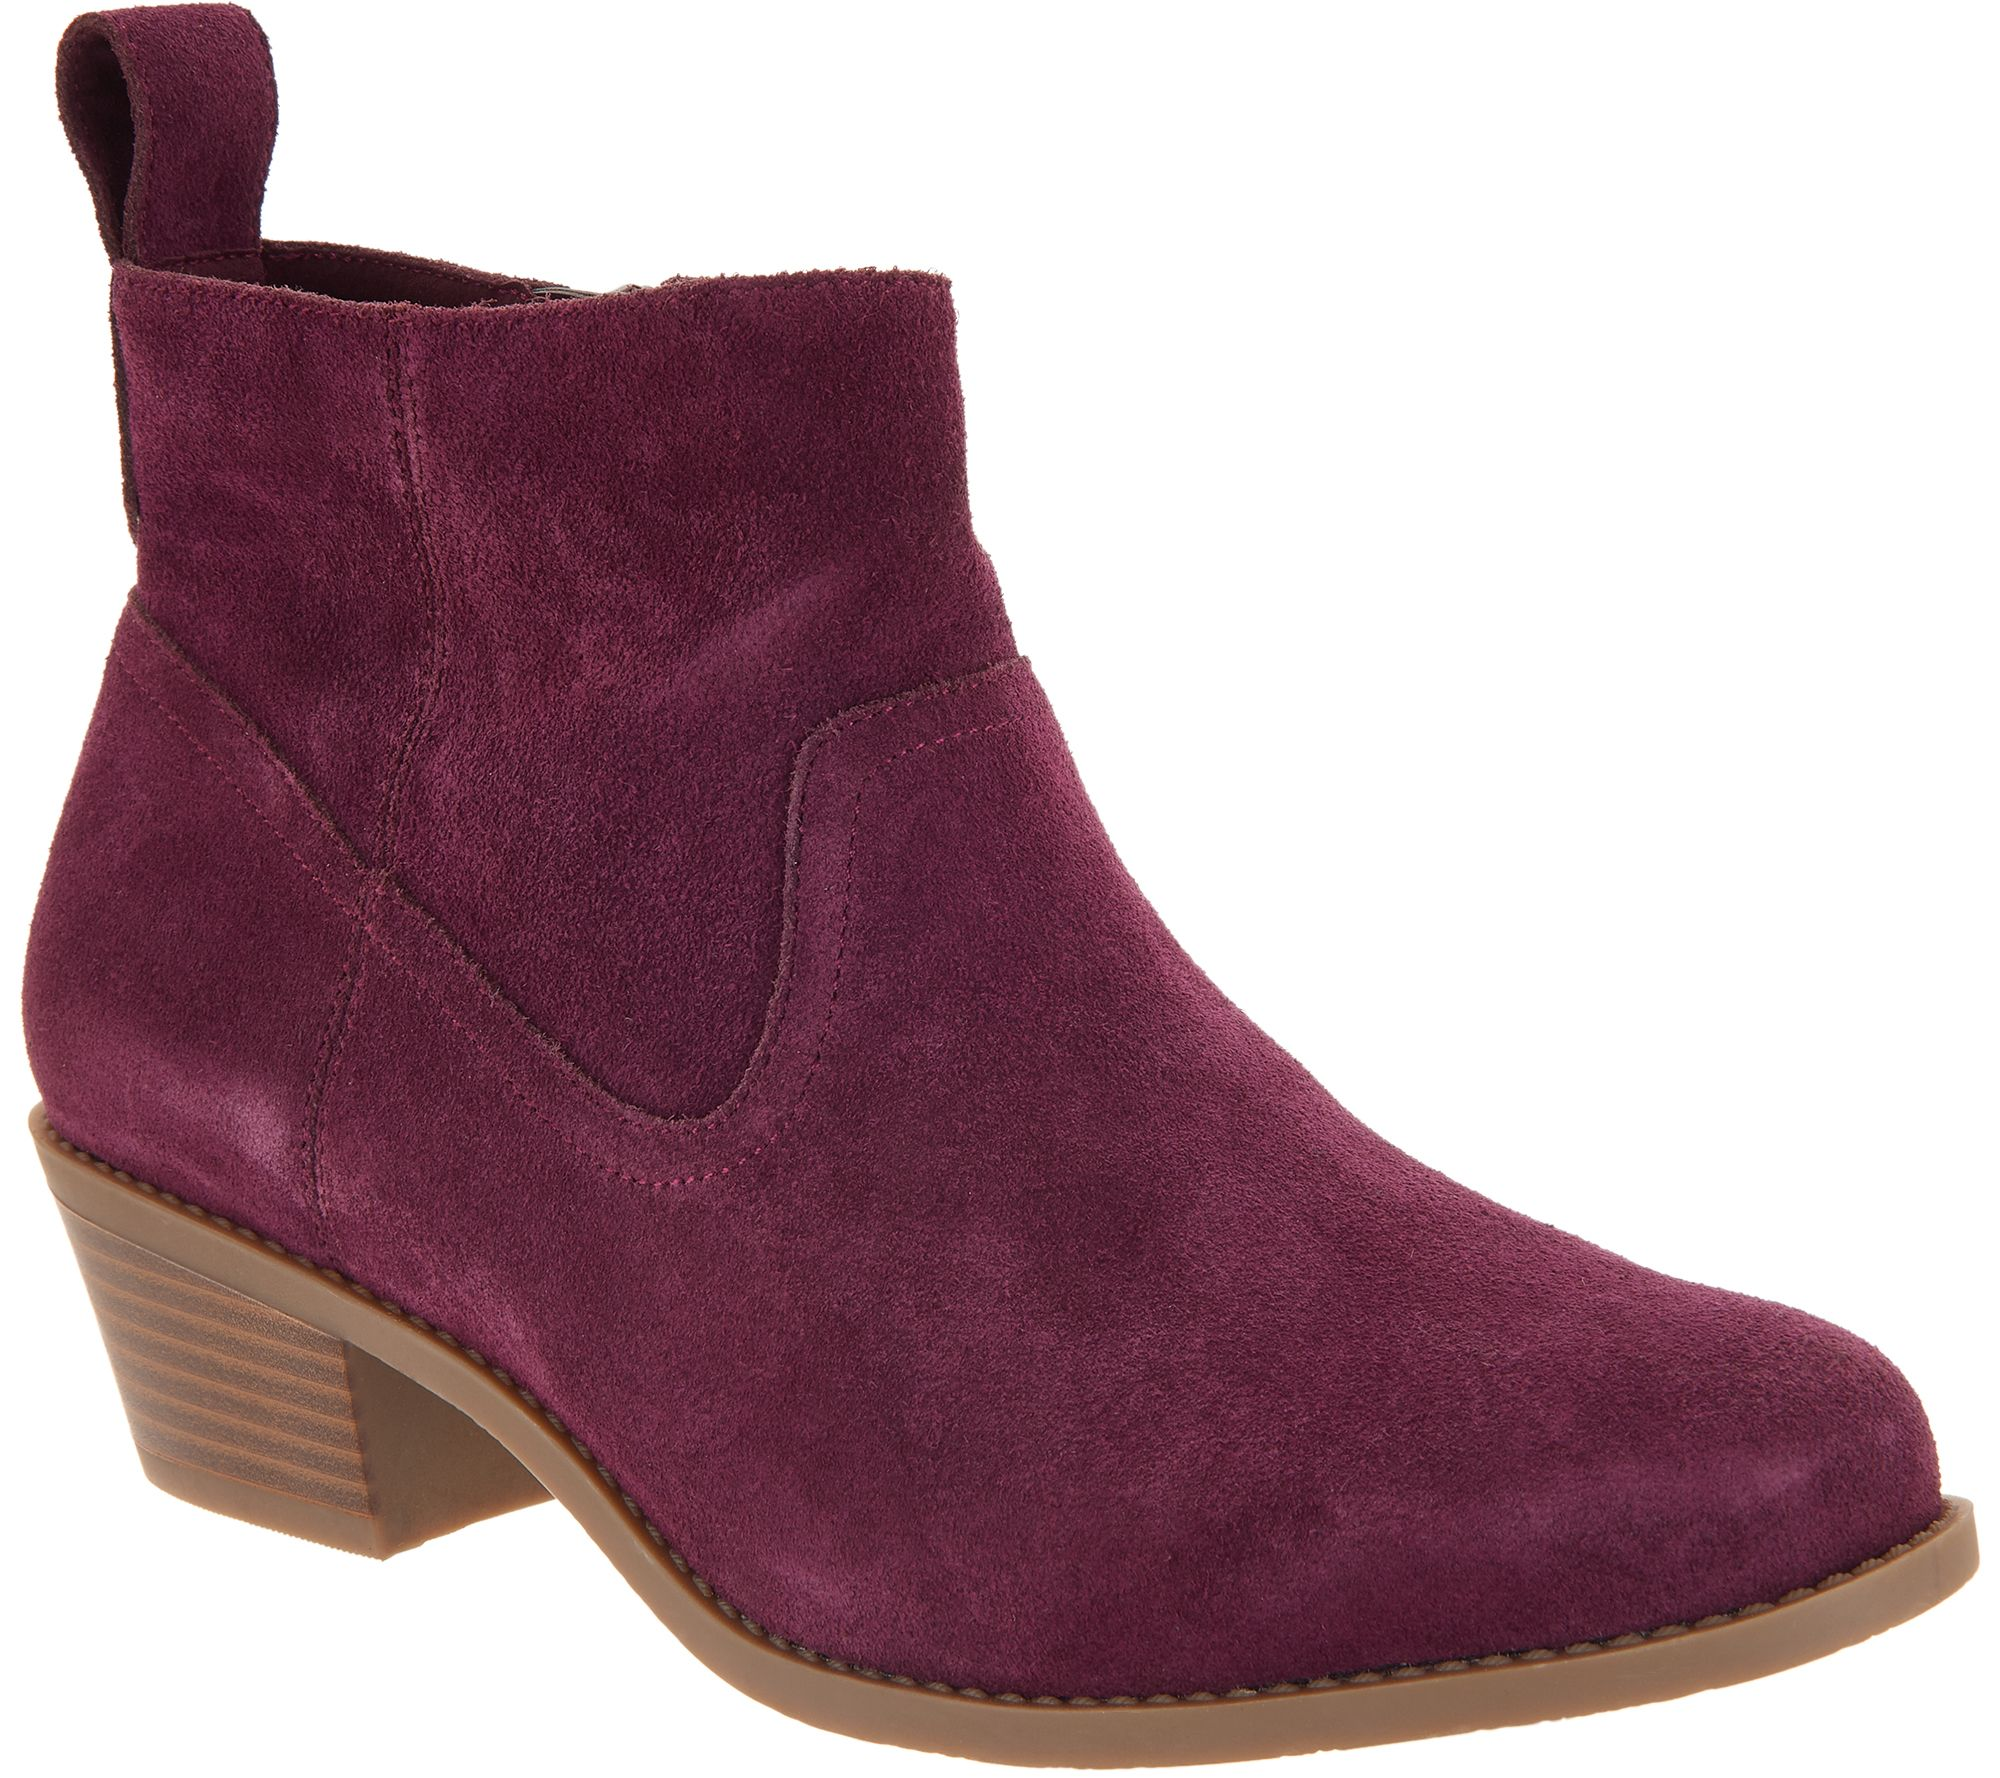 6b249486df5 Vionic Water-Resistant Suede Ankle Boots - Vera - Page 1 — QVC.com